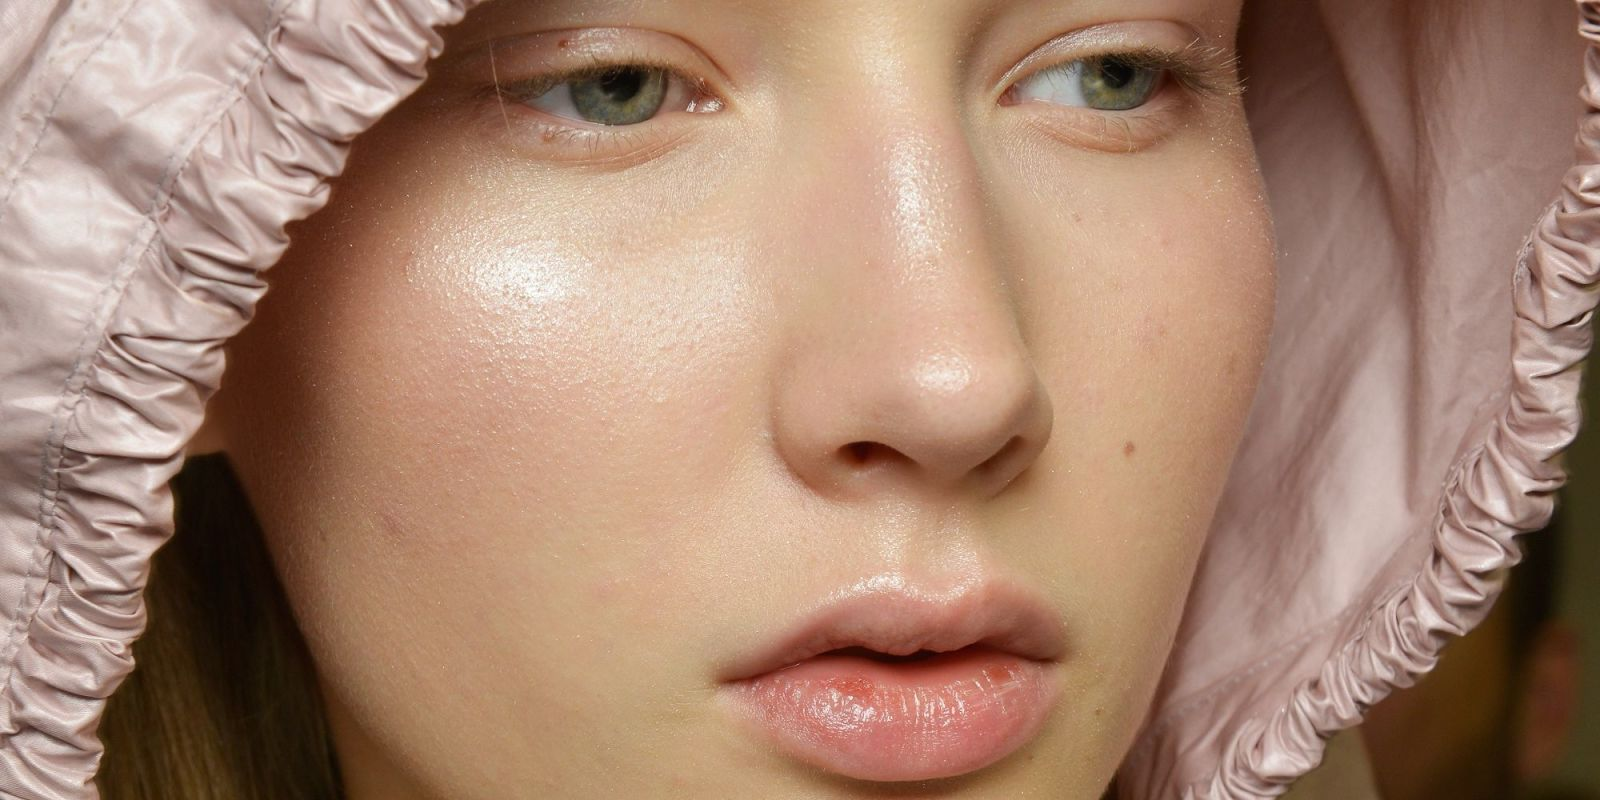 how to make makeup look natural with acne